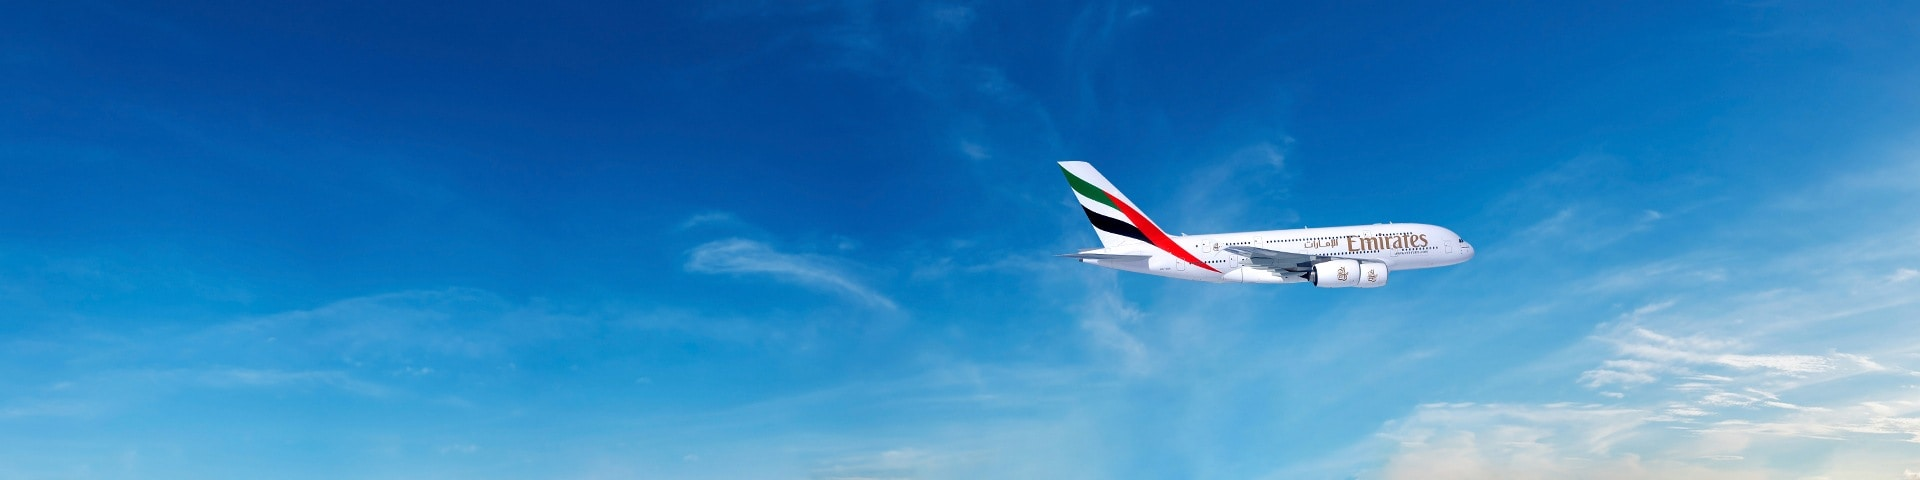 Emirates A380 flying through the clear blue sky